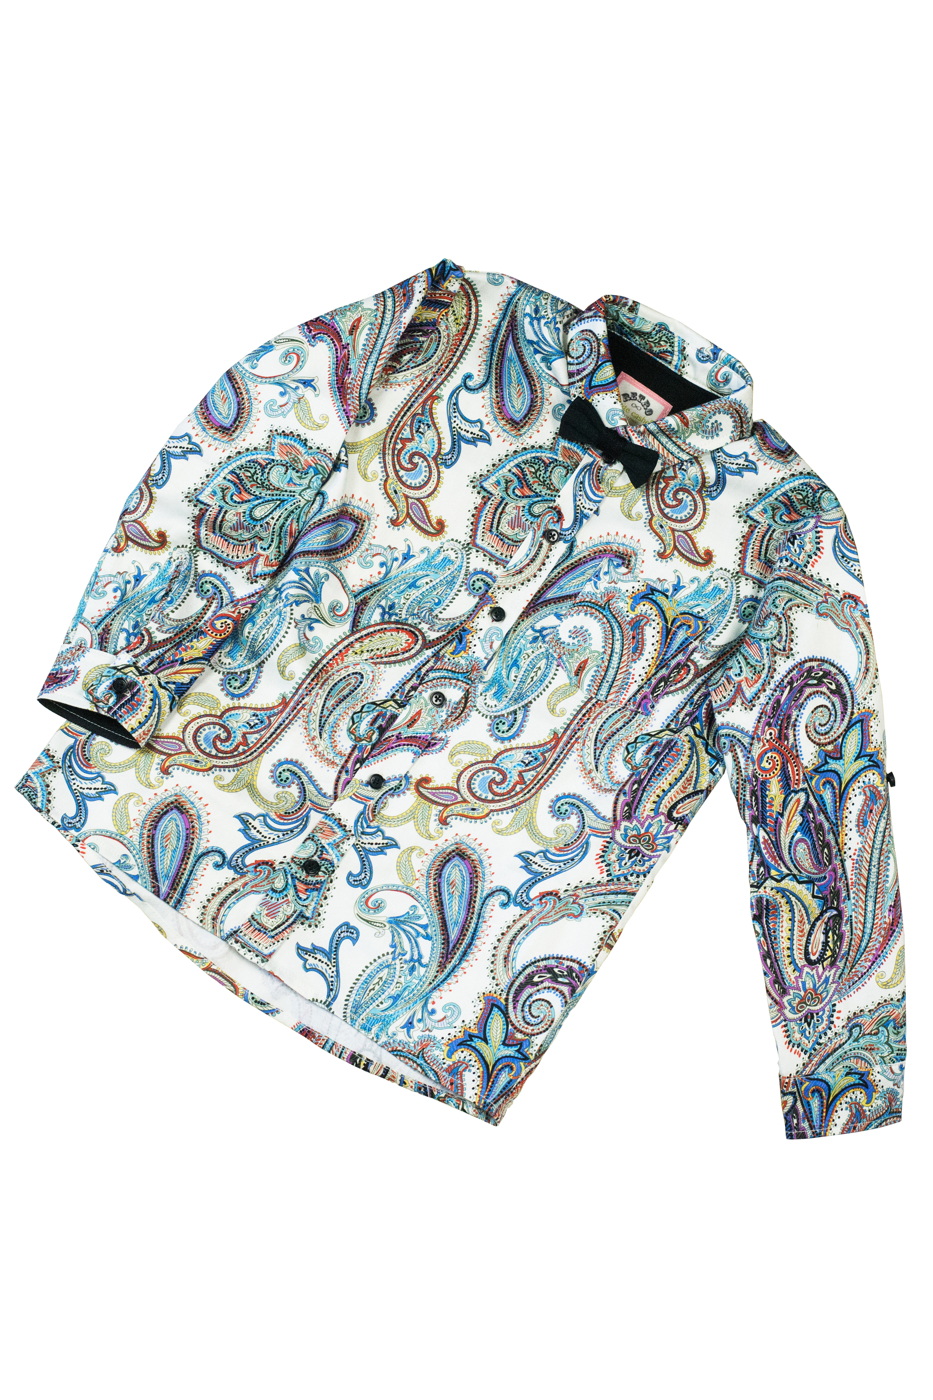 Feaver shirt with bow